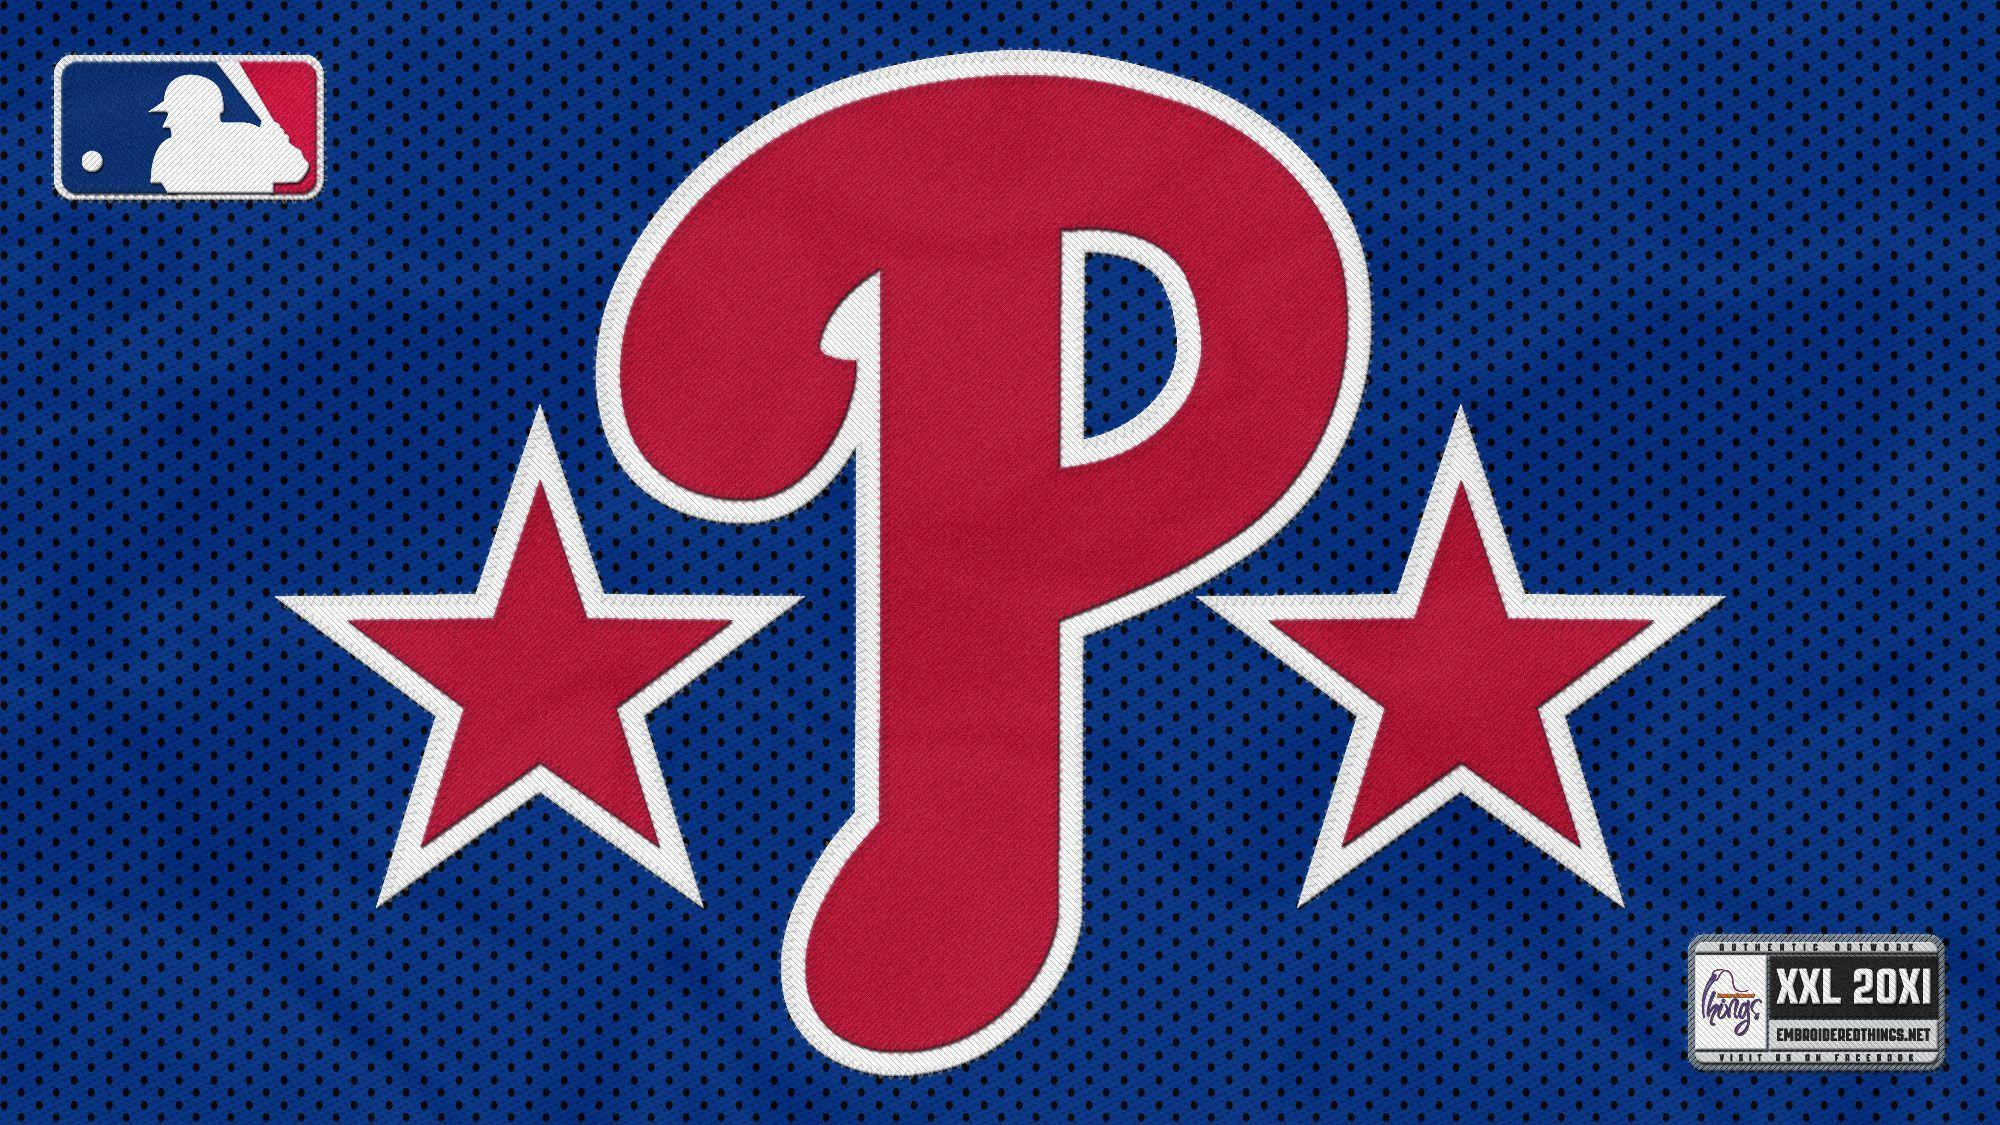 Philadelphia Phillies wallpapers | Philadelphia Phillies ...